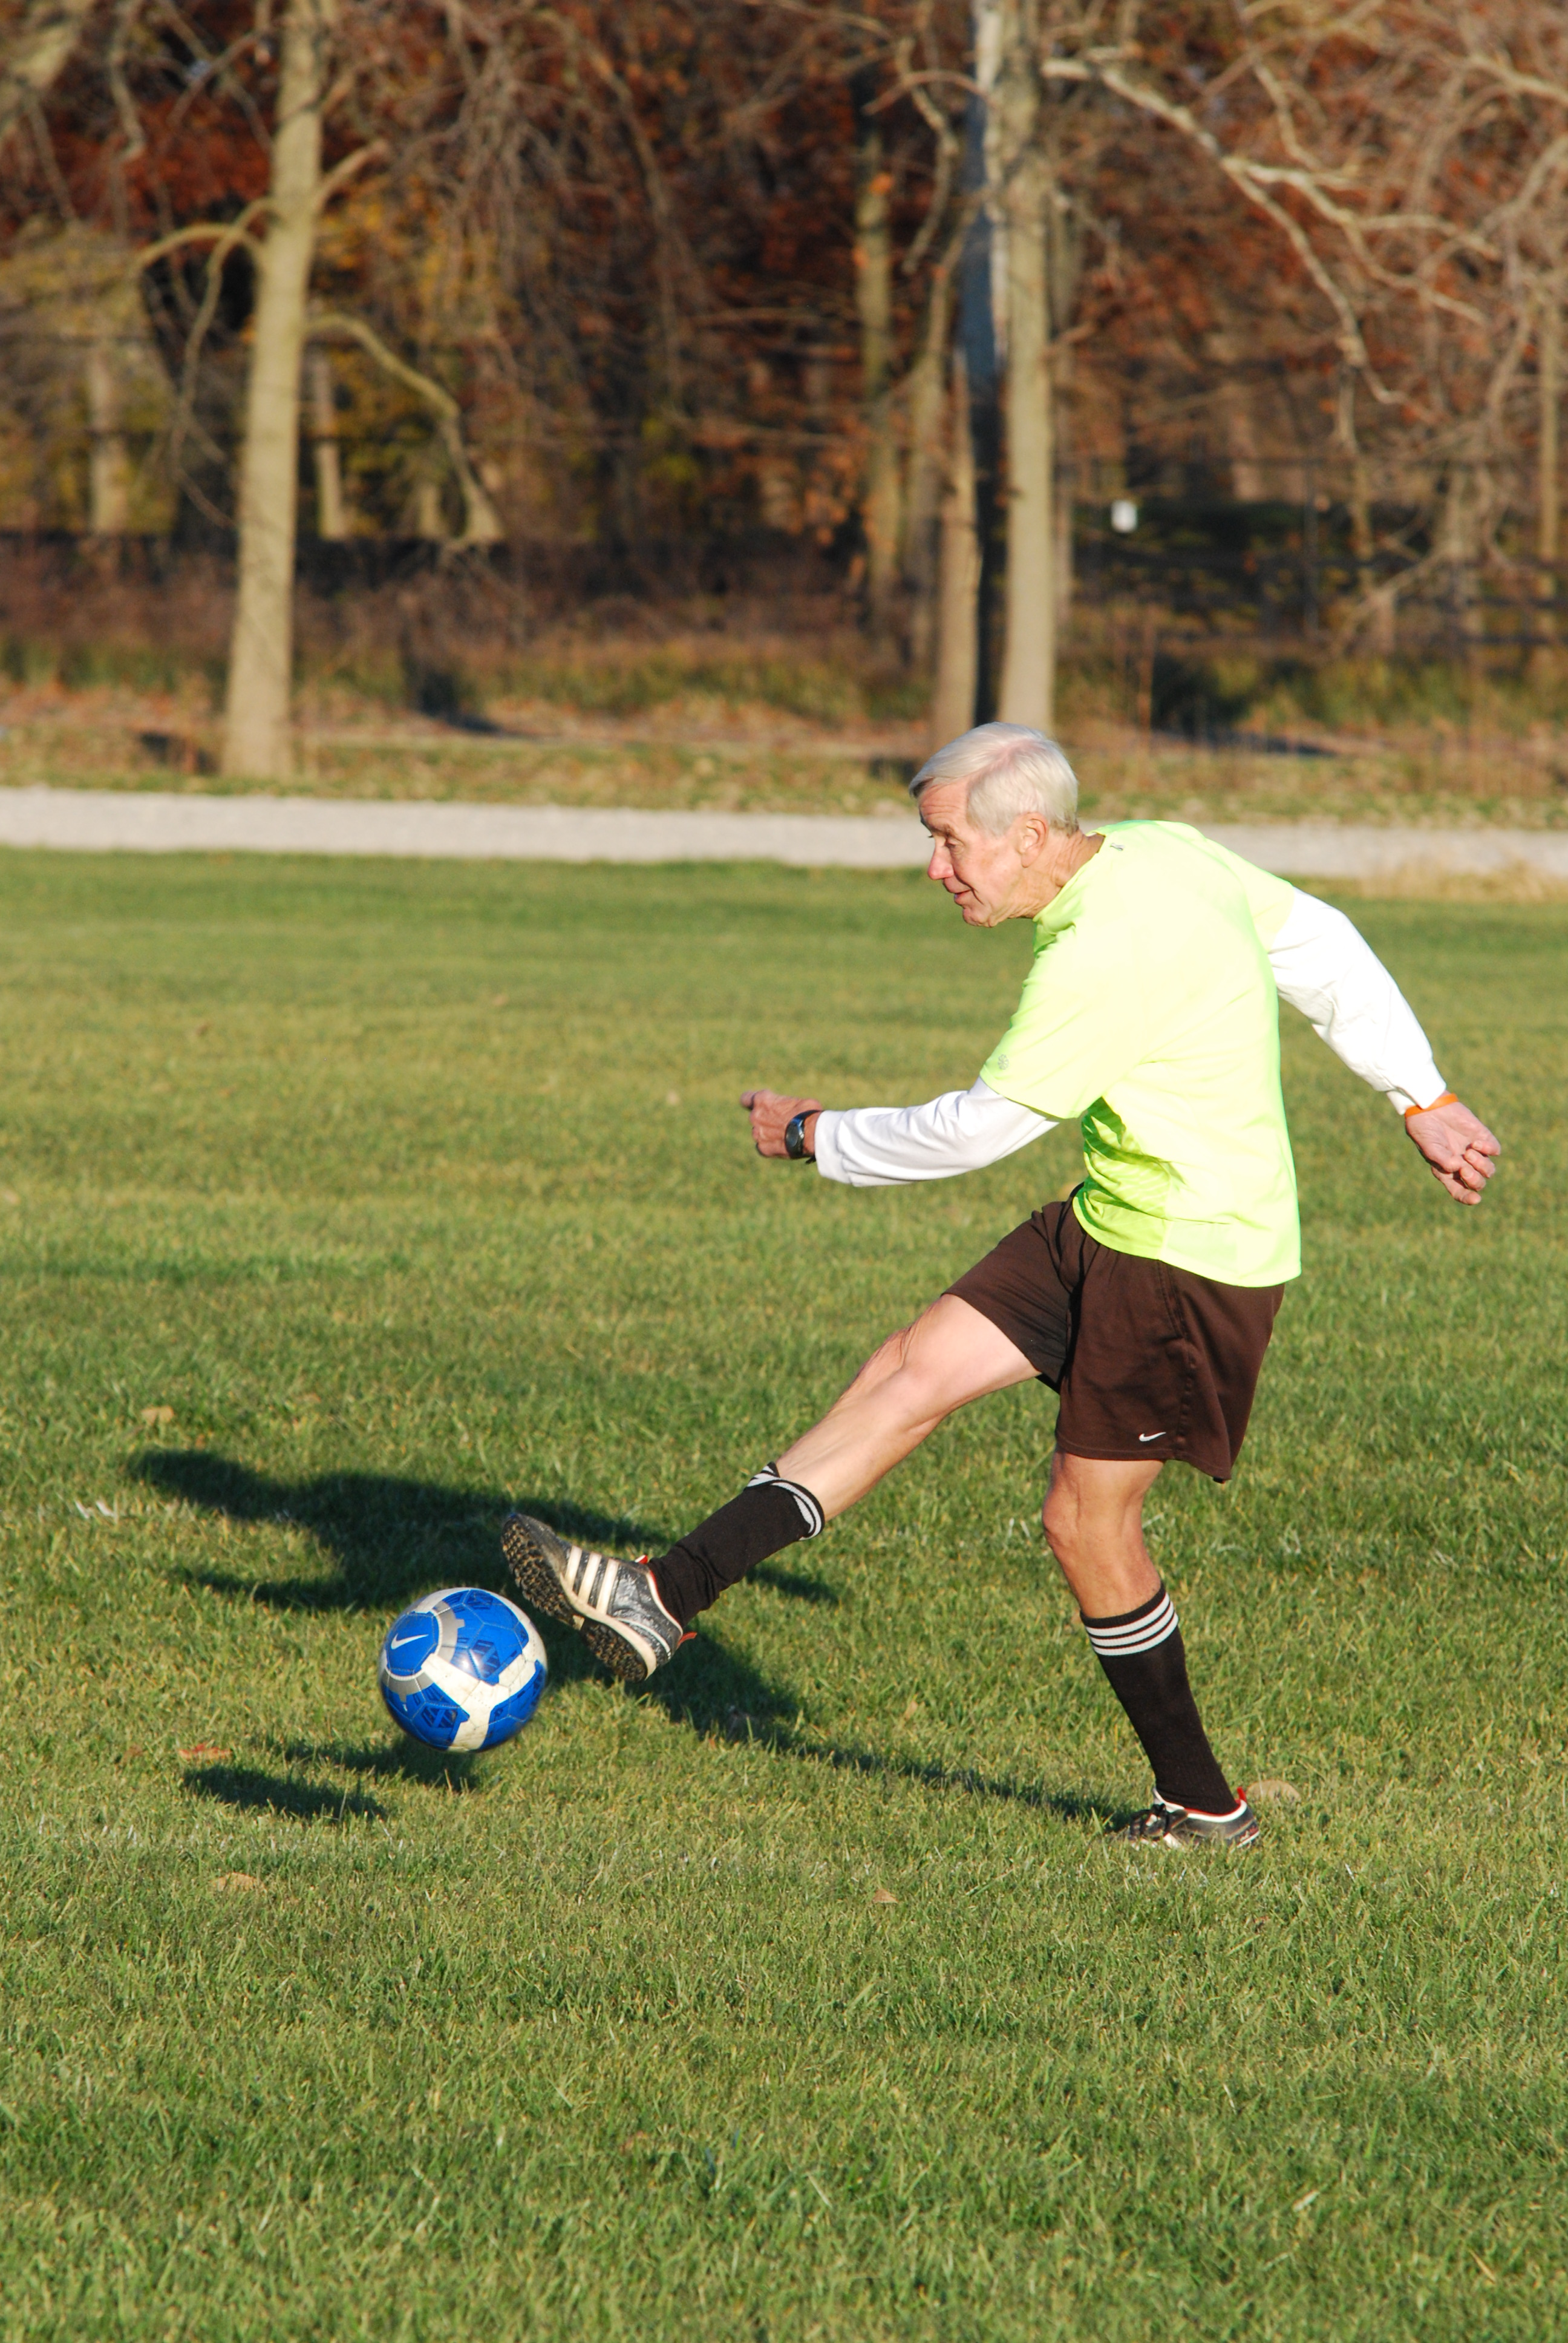 Bruce Carlstedt practices with members of his adult coed soccer team at Habig Fields. Carlstedt helped to found Westfield Youth Soccer and started the adult recreation league. (Photo by Robert Herrington)